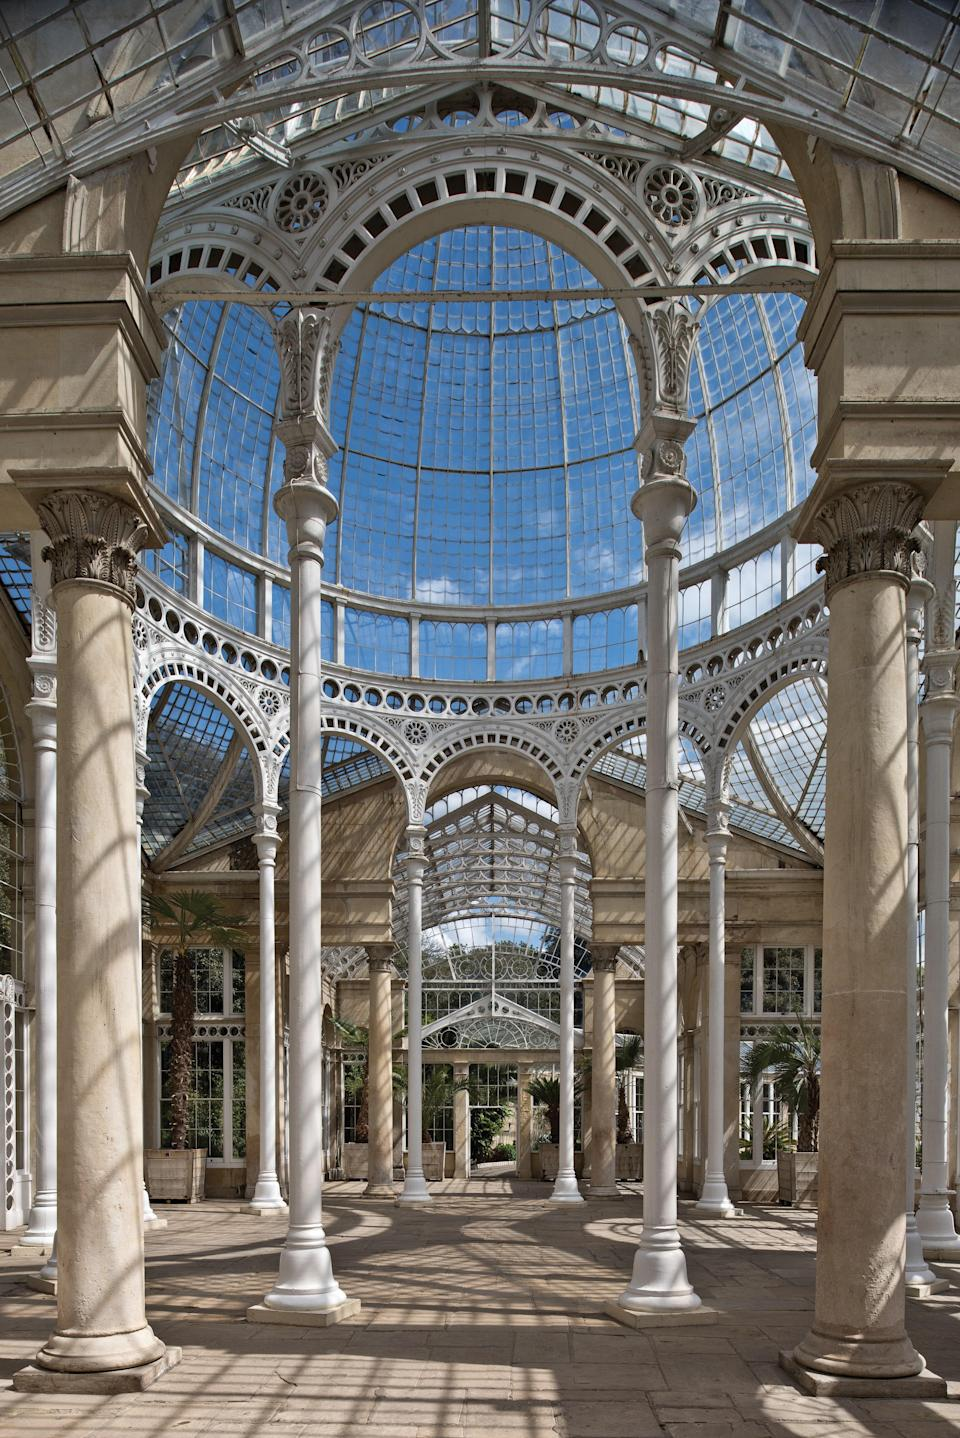 The interior of Syon Park Conservatory demonstrates impressive engineering prowess, particularly in the main dome.